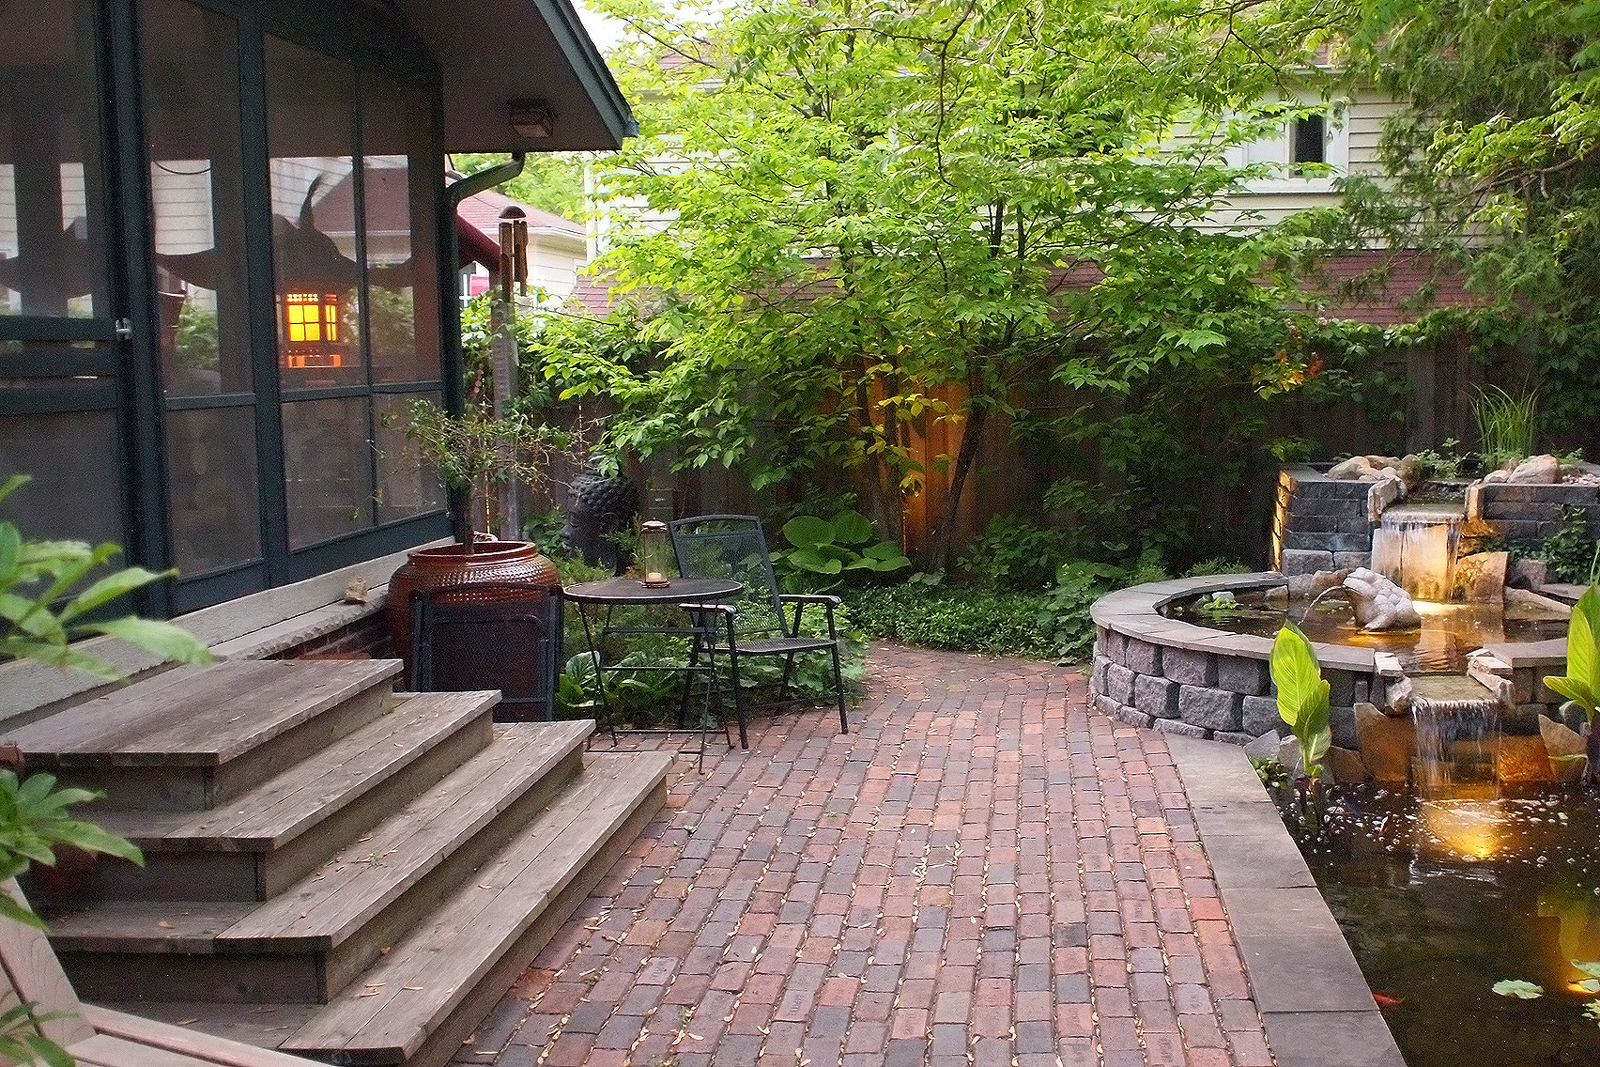 Paver Patio Ideas | Stone Patio Ideas | HouseLogic on Small Brick Patio Ideas id=66716